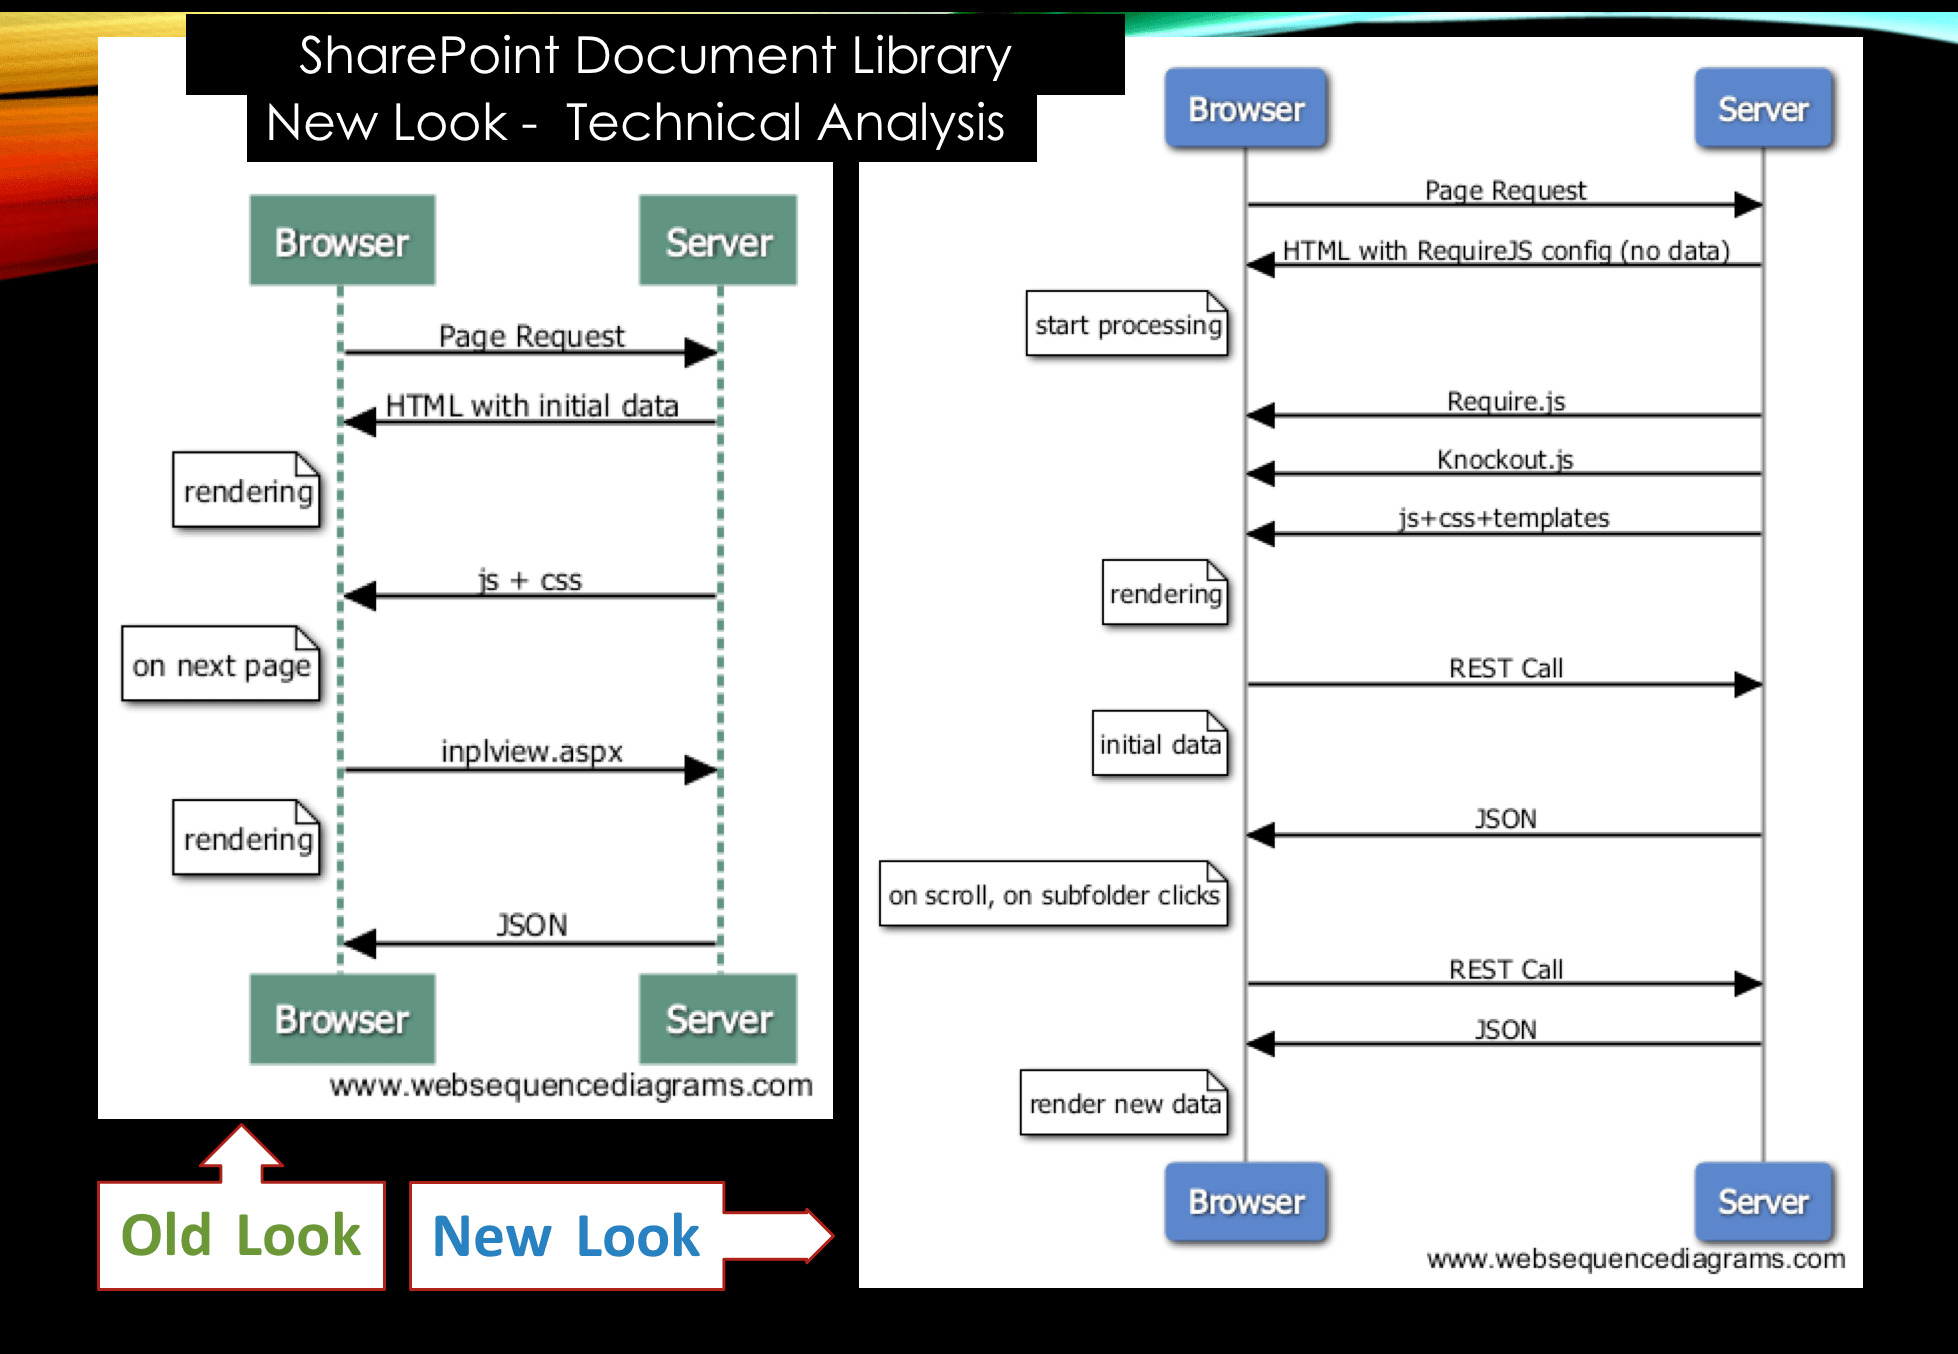 SharePoint Online Document Library New Look Analysis